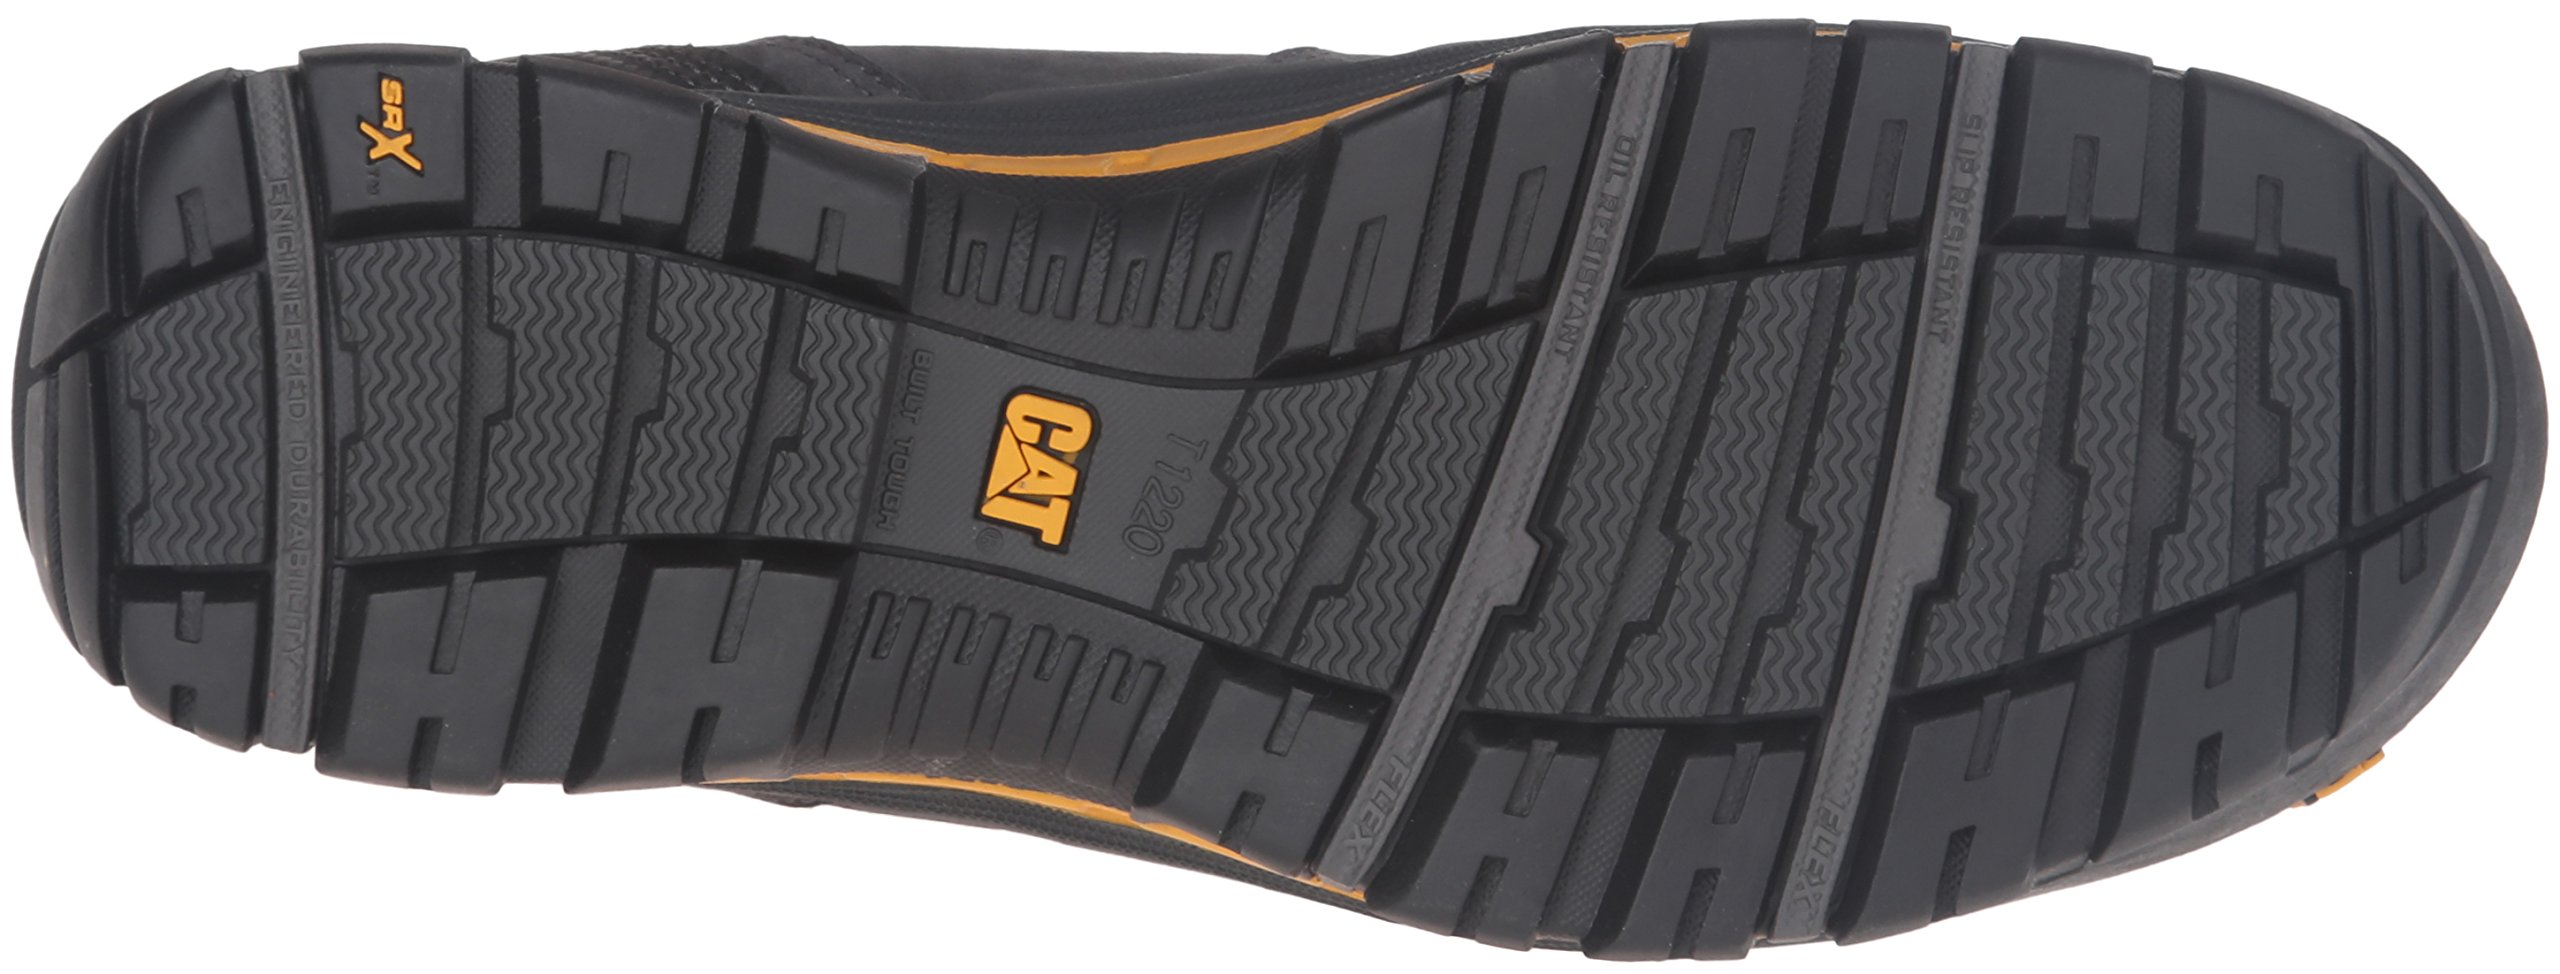 Caterpillar Men's Munising 6'' Waterproof Industrial and Construction Shoe, Dark Shadow, 13 M US by Caterpillar (Image #3)